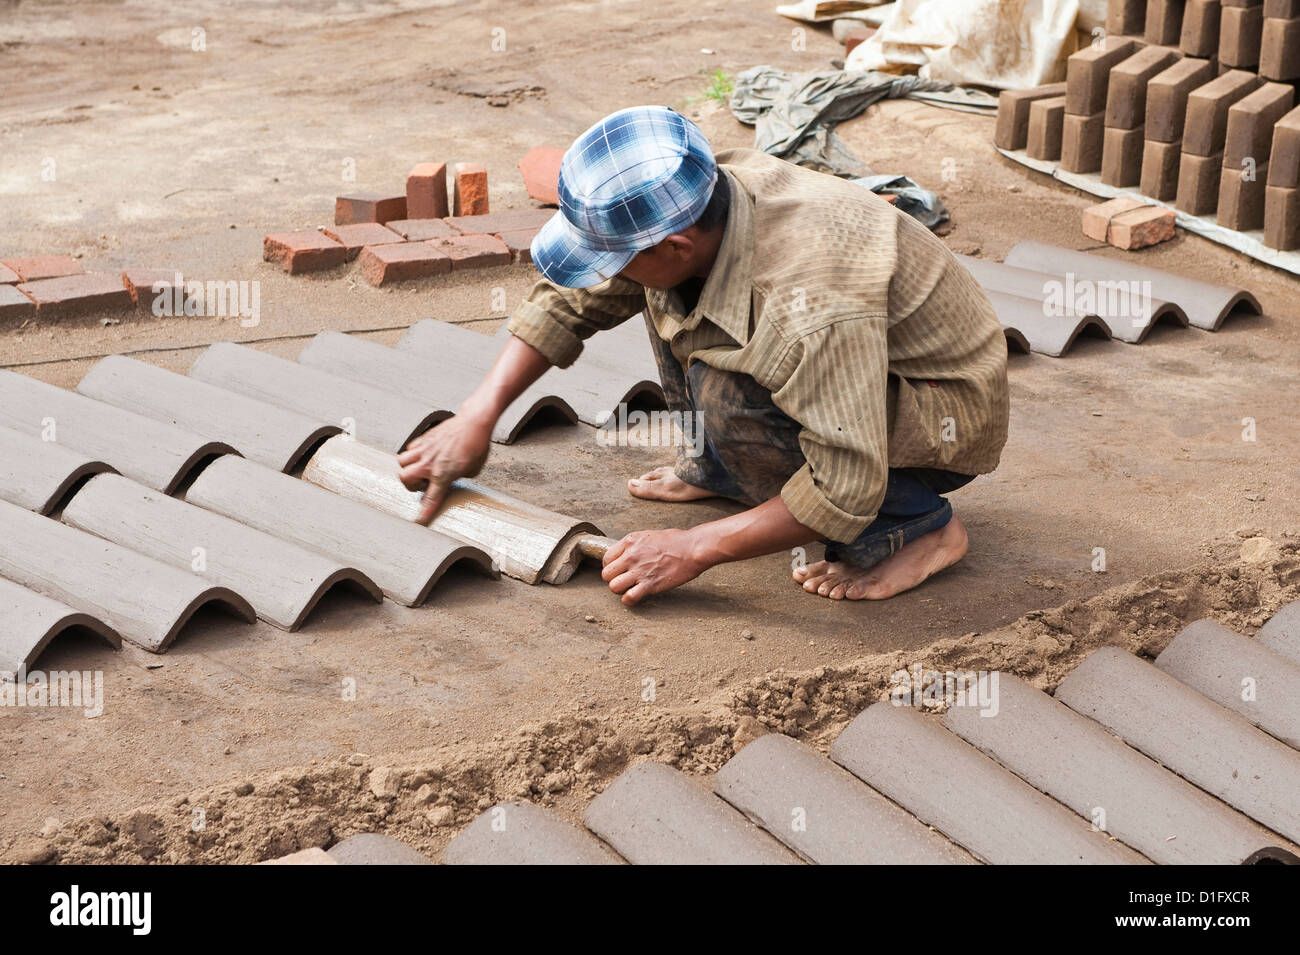 Clay brick and tile factory outside Antigua, Guatemala, Central America - Stock Image